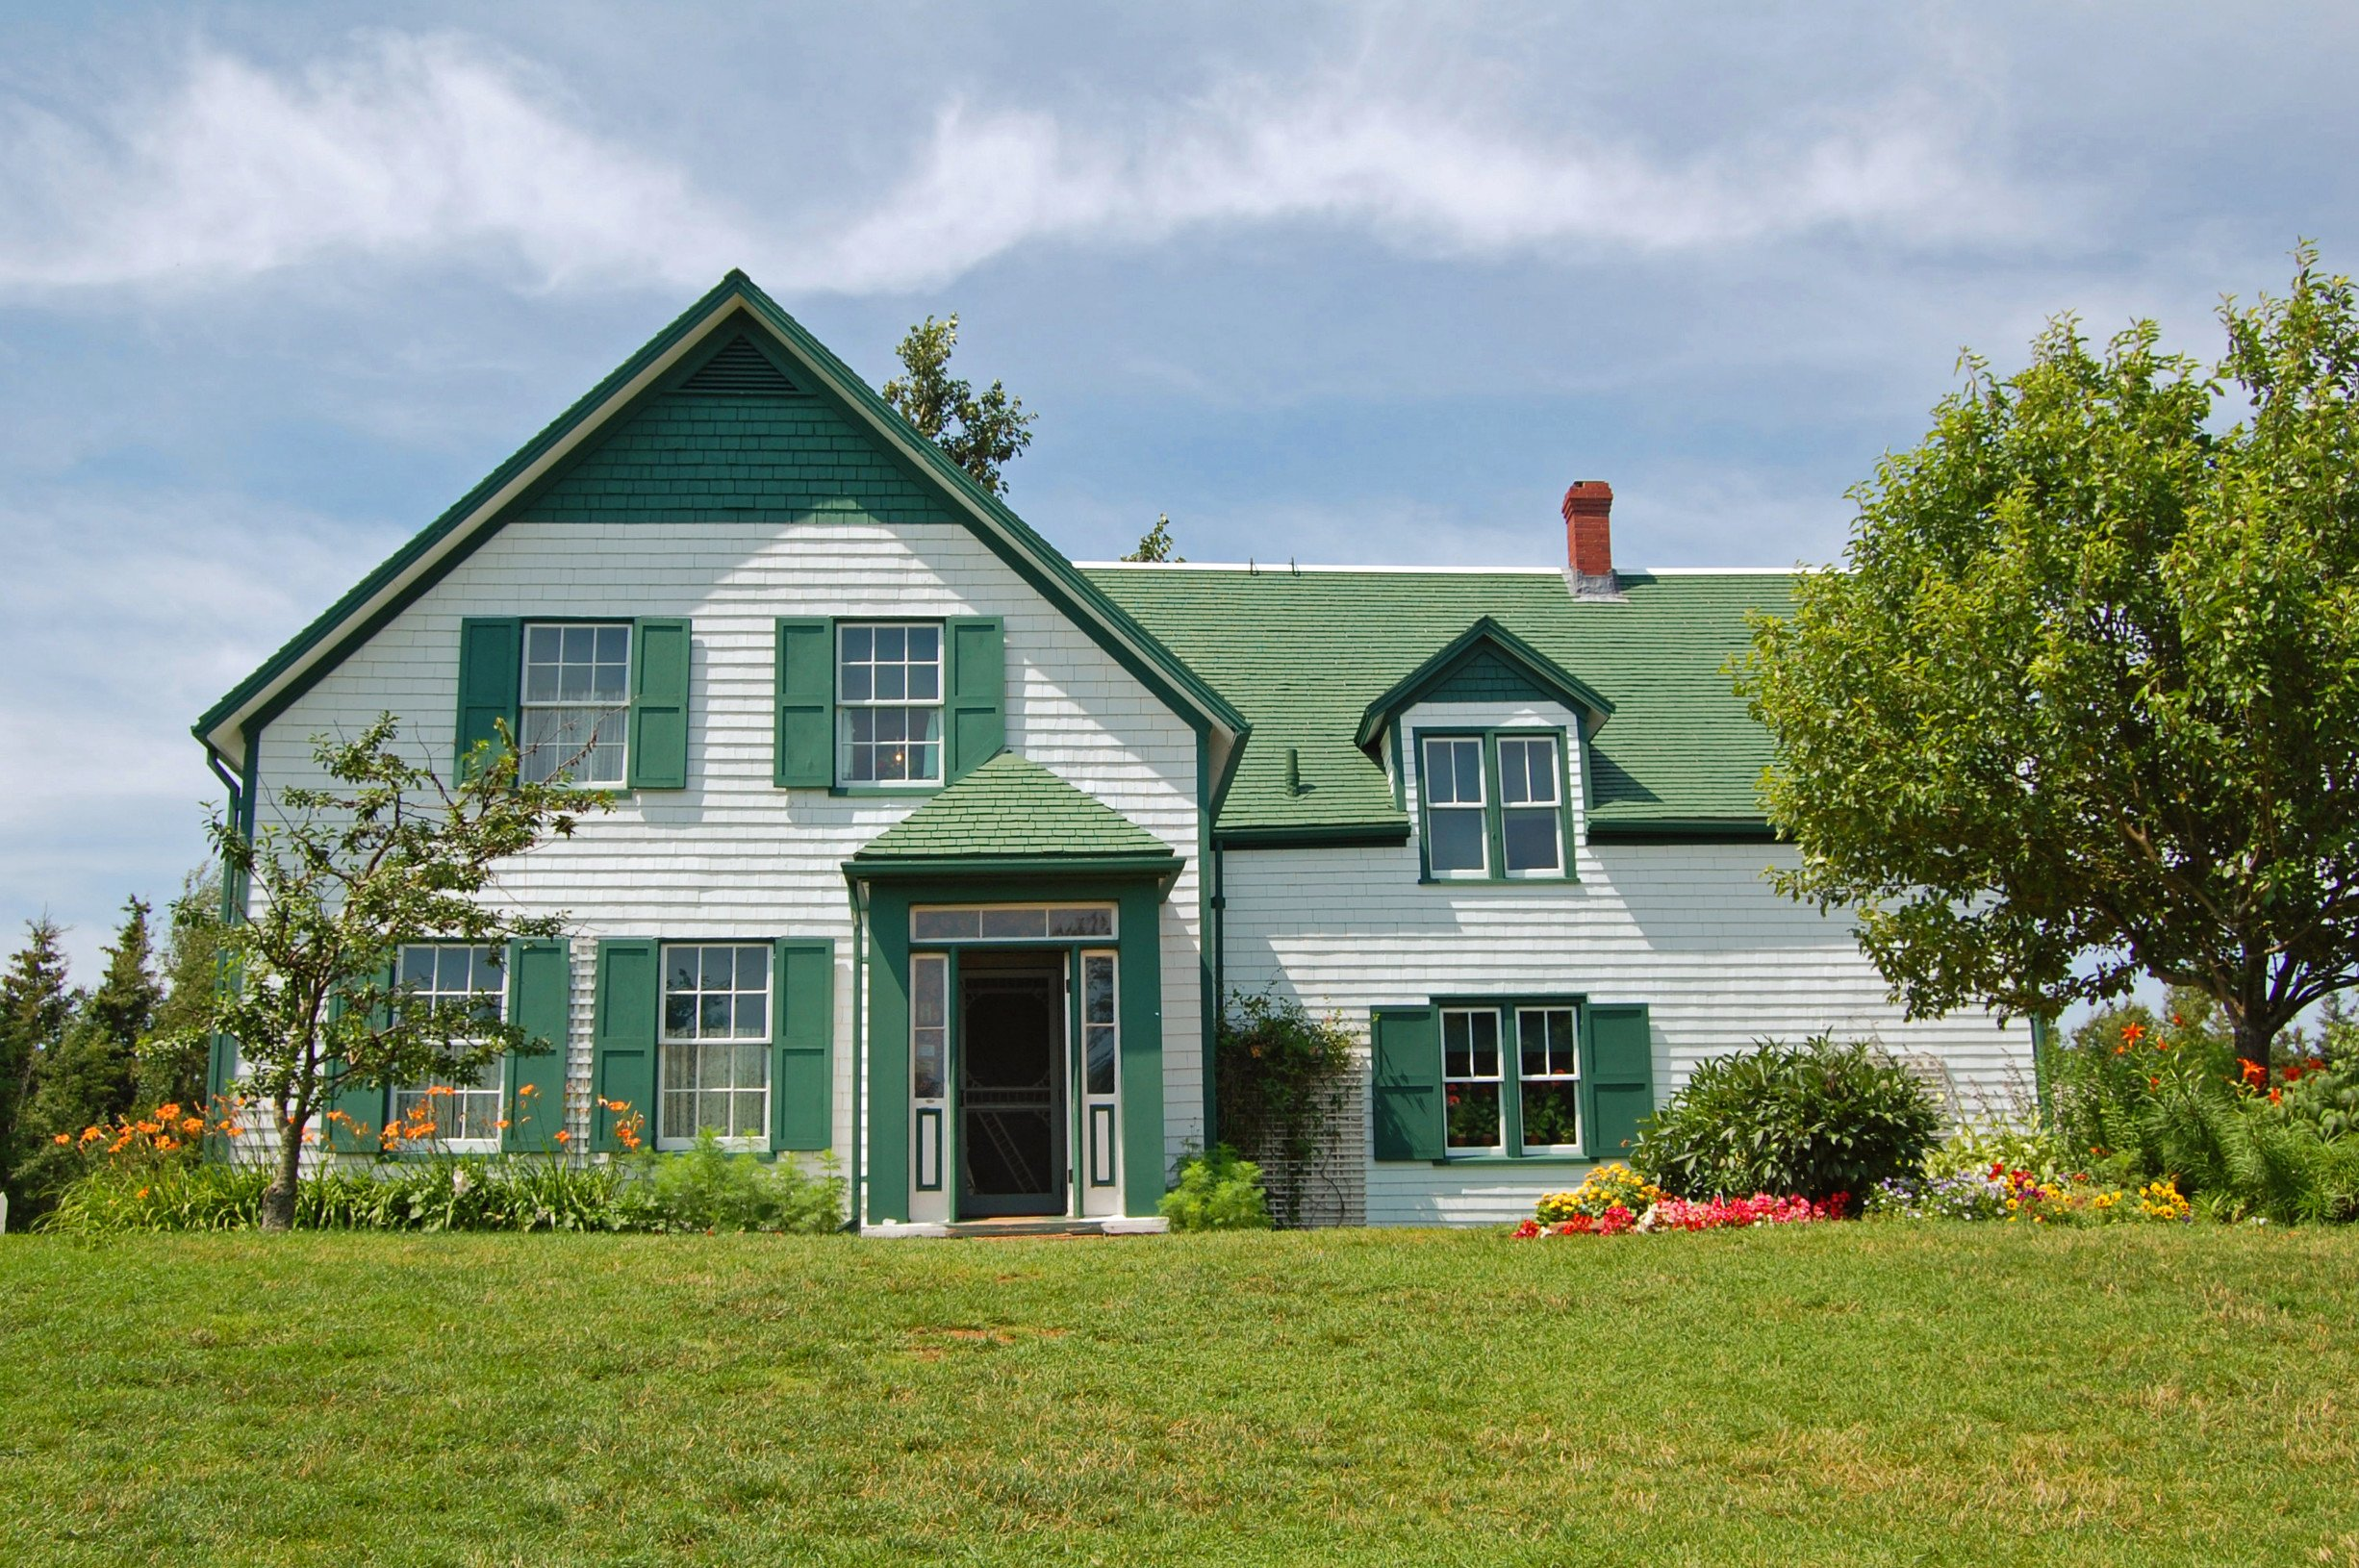 Green Gables Farm in Cavendish Canada Anne of Green Gables by L.M. Montgomery